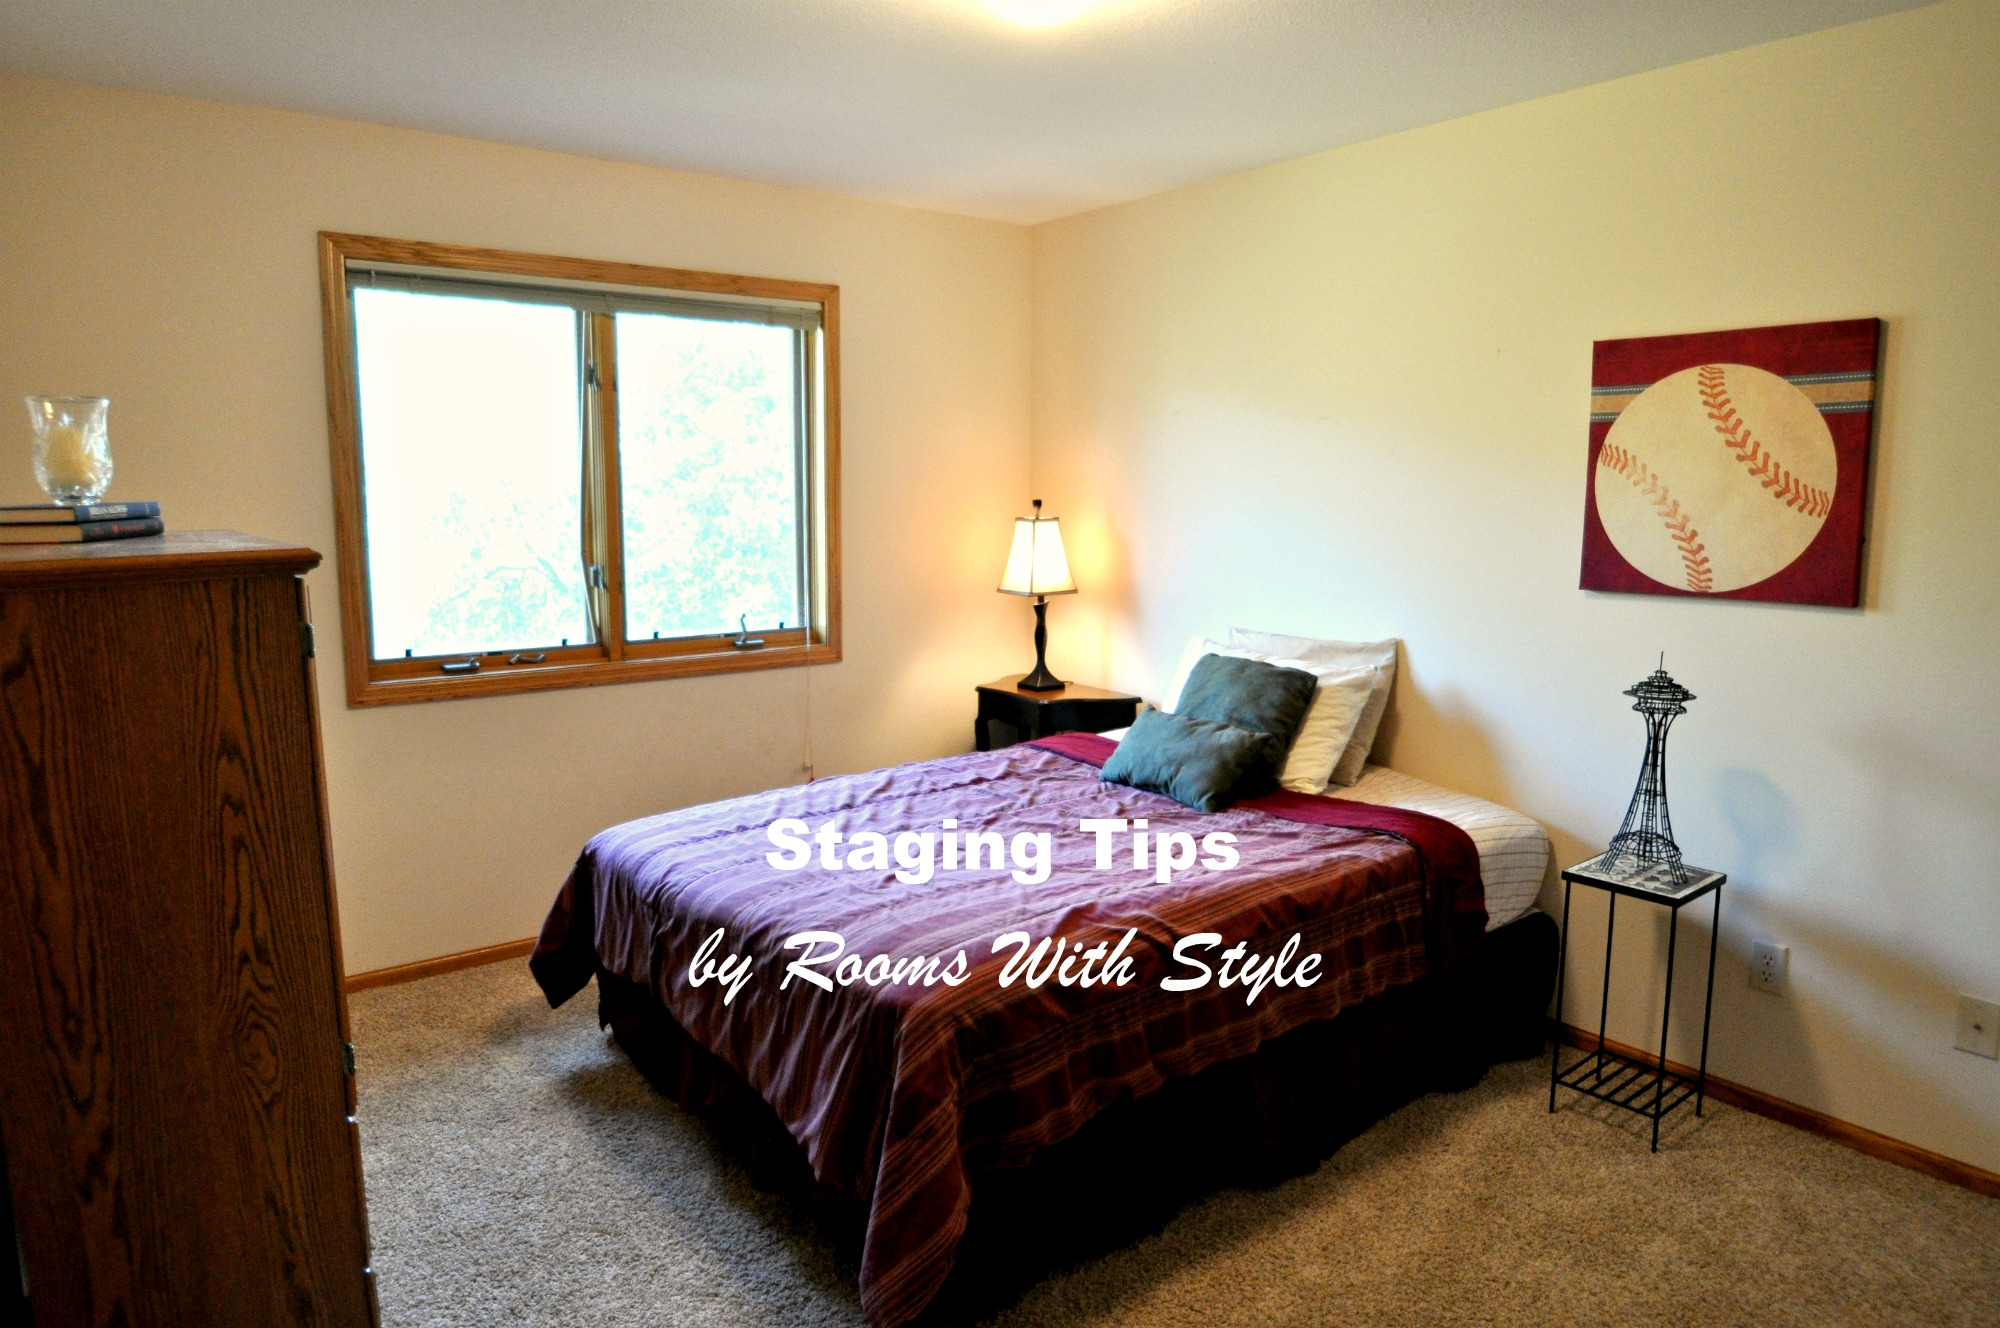 Bedroom After Home Staging